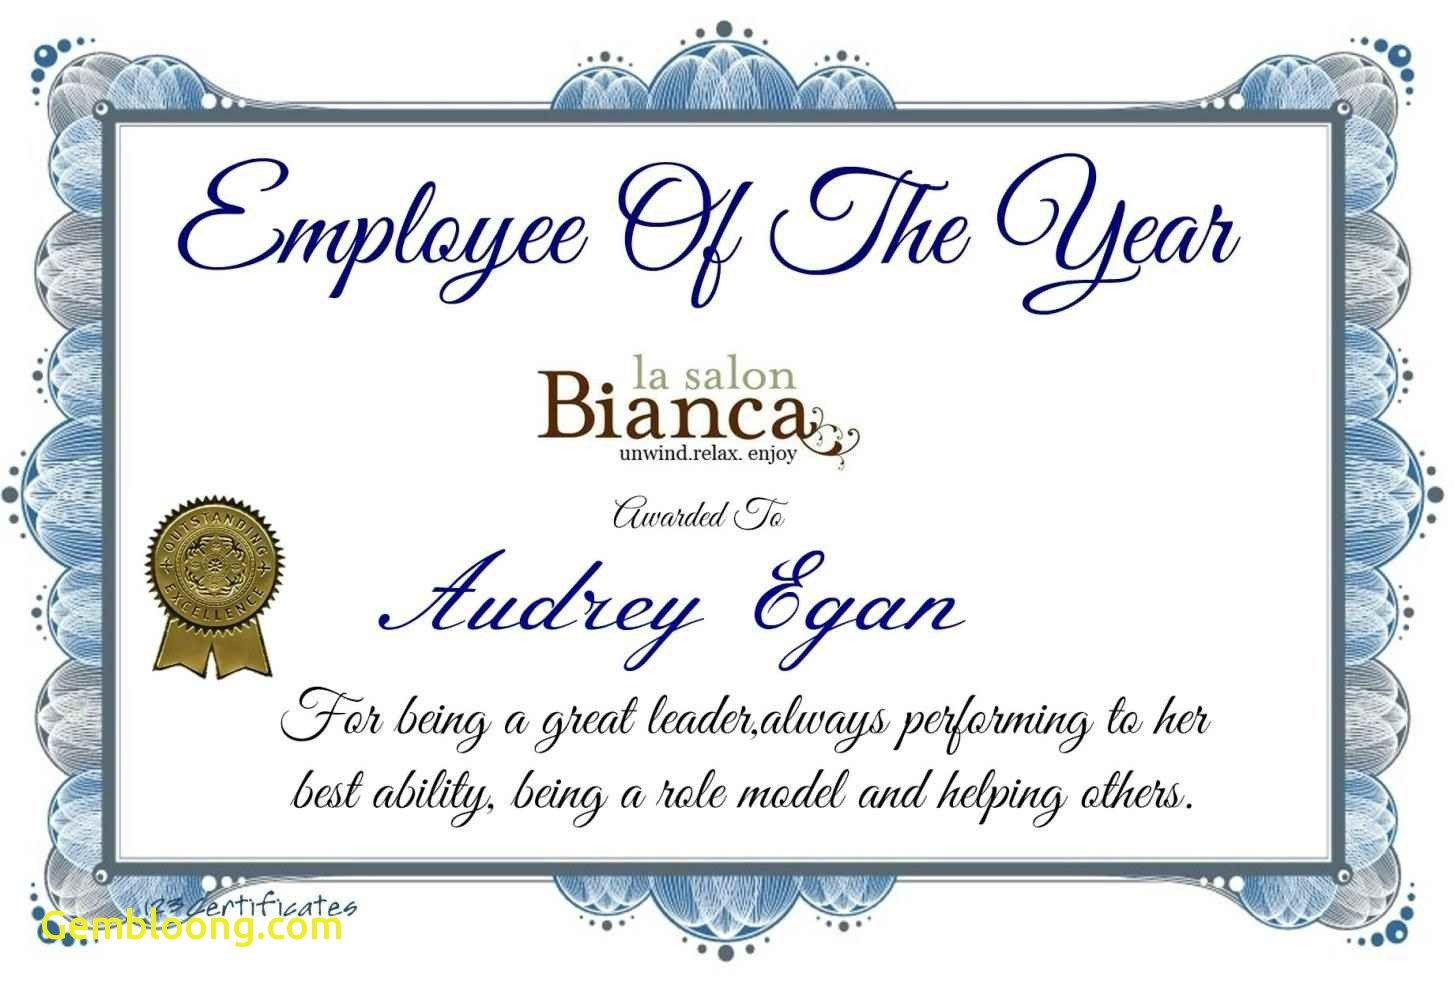 Employee Of The Year Certificate Template Update234 Com Employee Awards Certificates Certificate Templates Awards Certificates Template Employee of the year award template